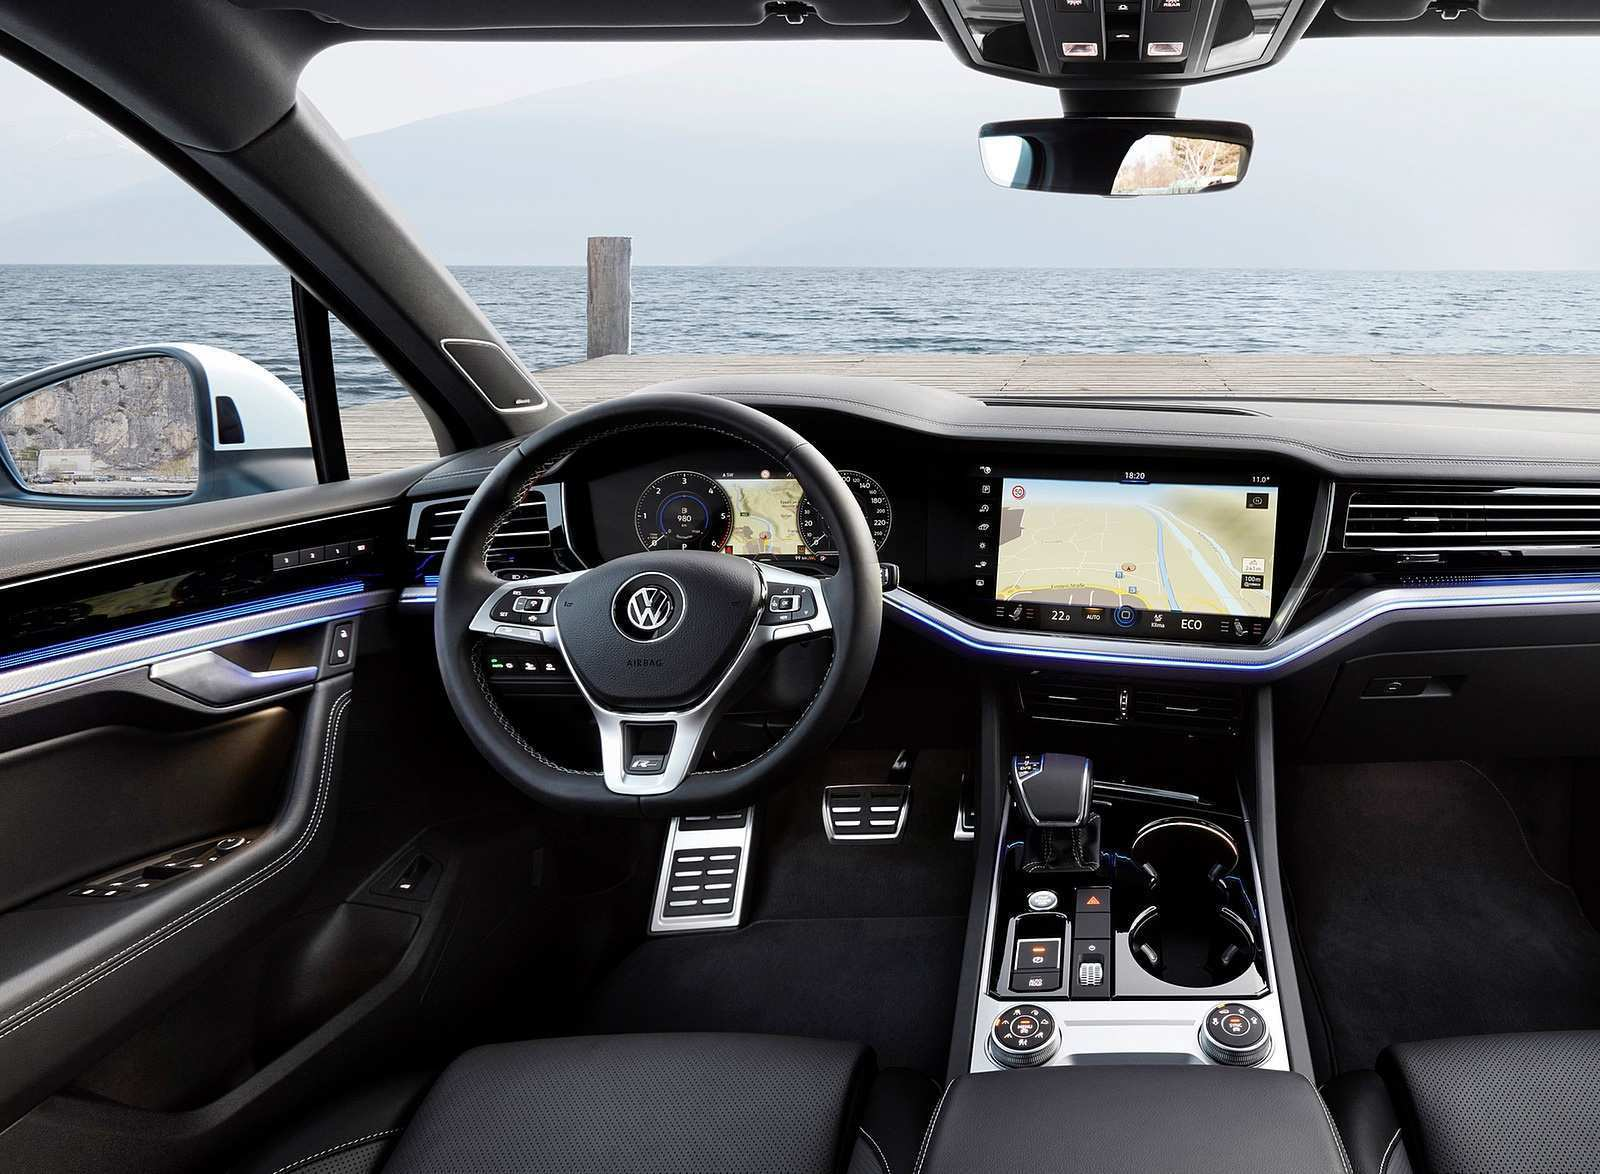 95 The Vw Touareg 2019 Interior Overview